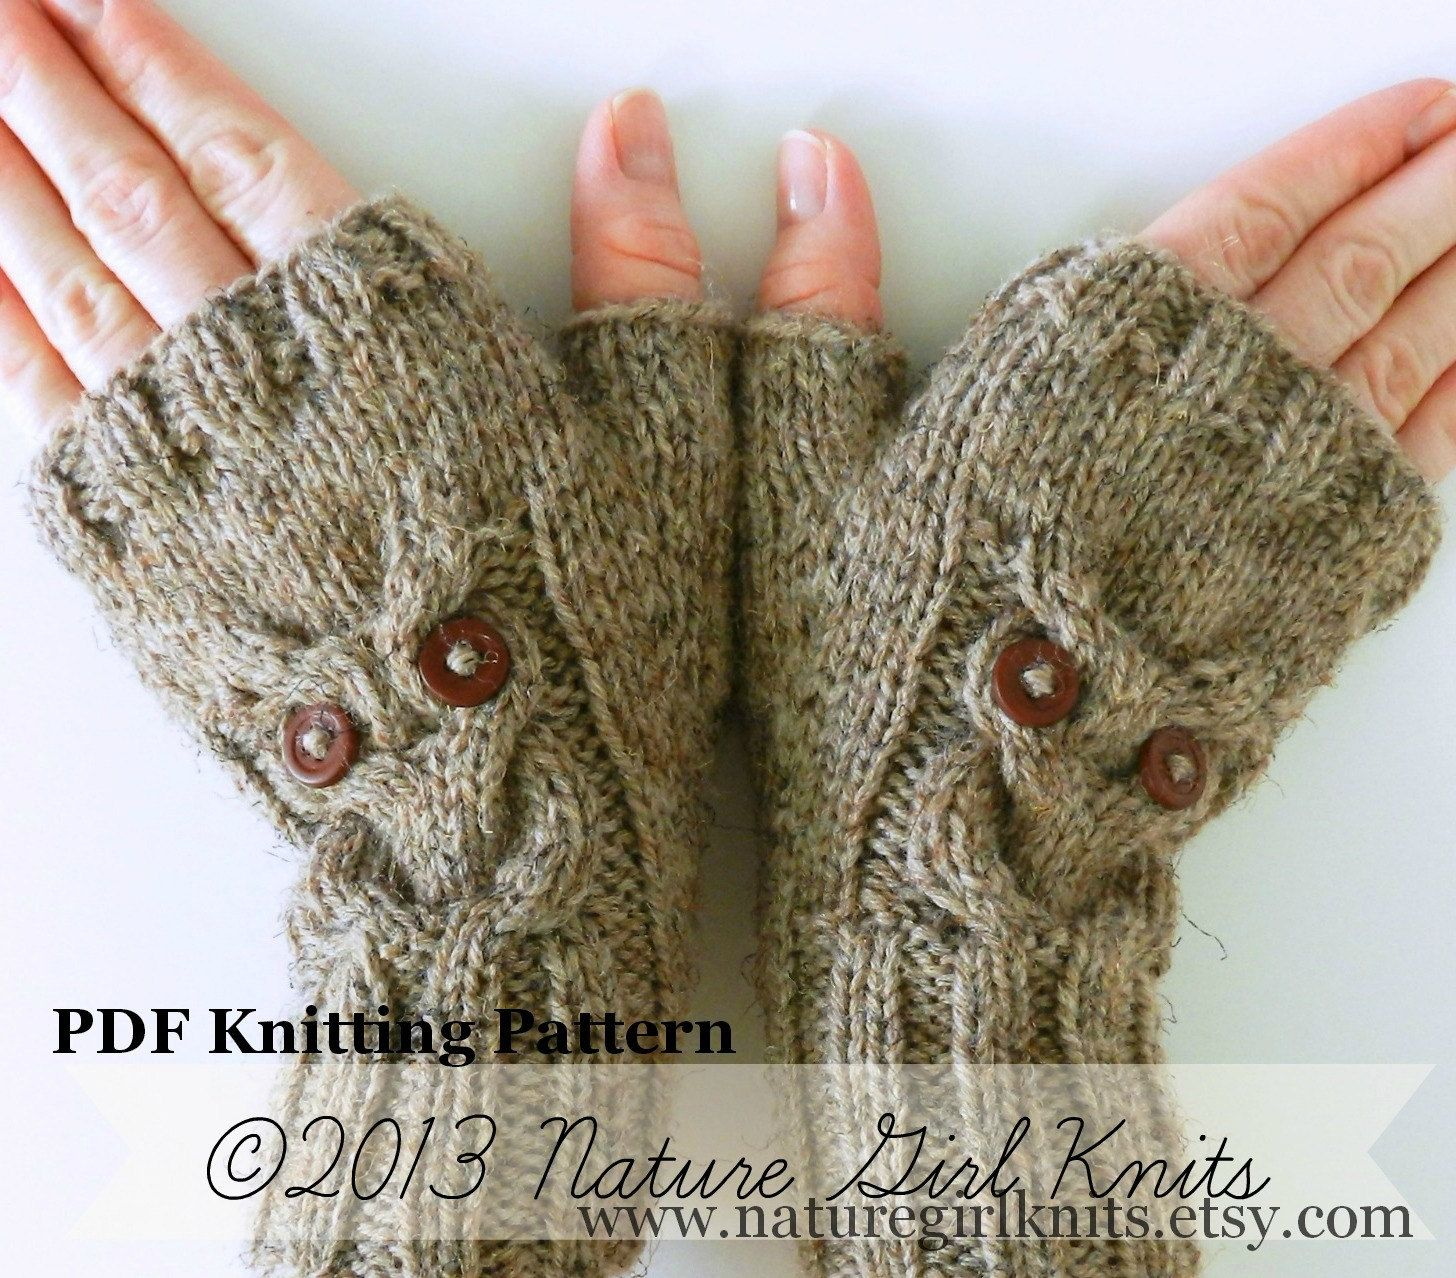 Pdf knitting pattern owl cable knit fingerless mittens pdf knitting pattern owl cable knit fingerless mittens instant download by naturegirlknits bankloansurffo Image collections